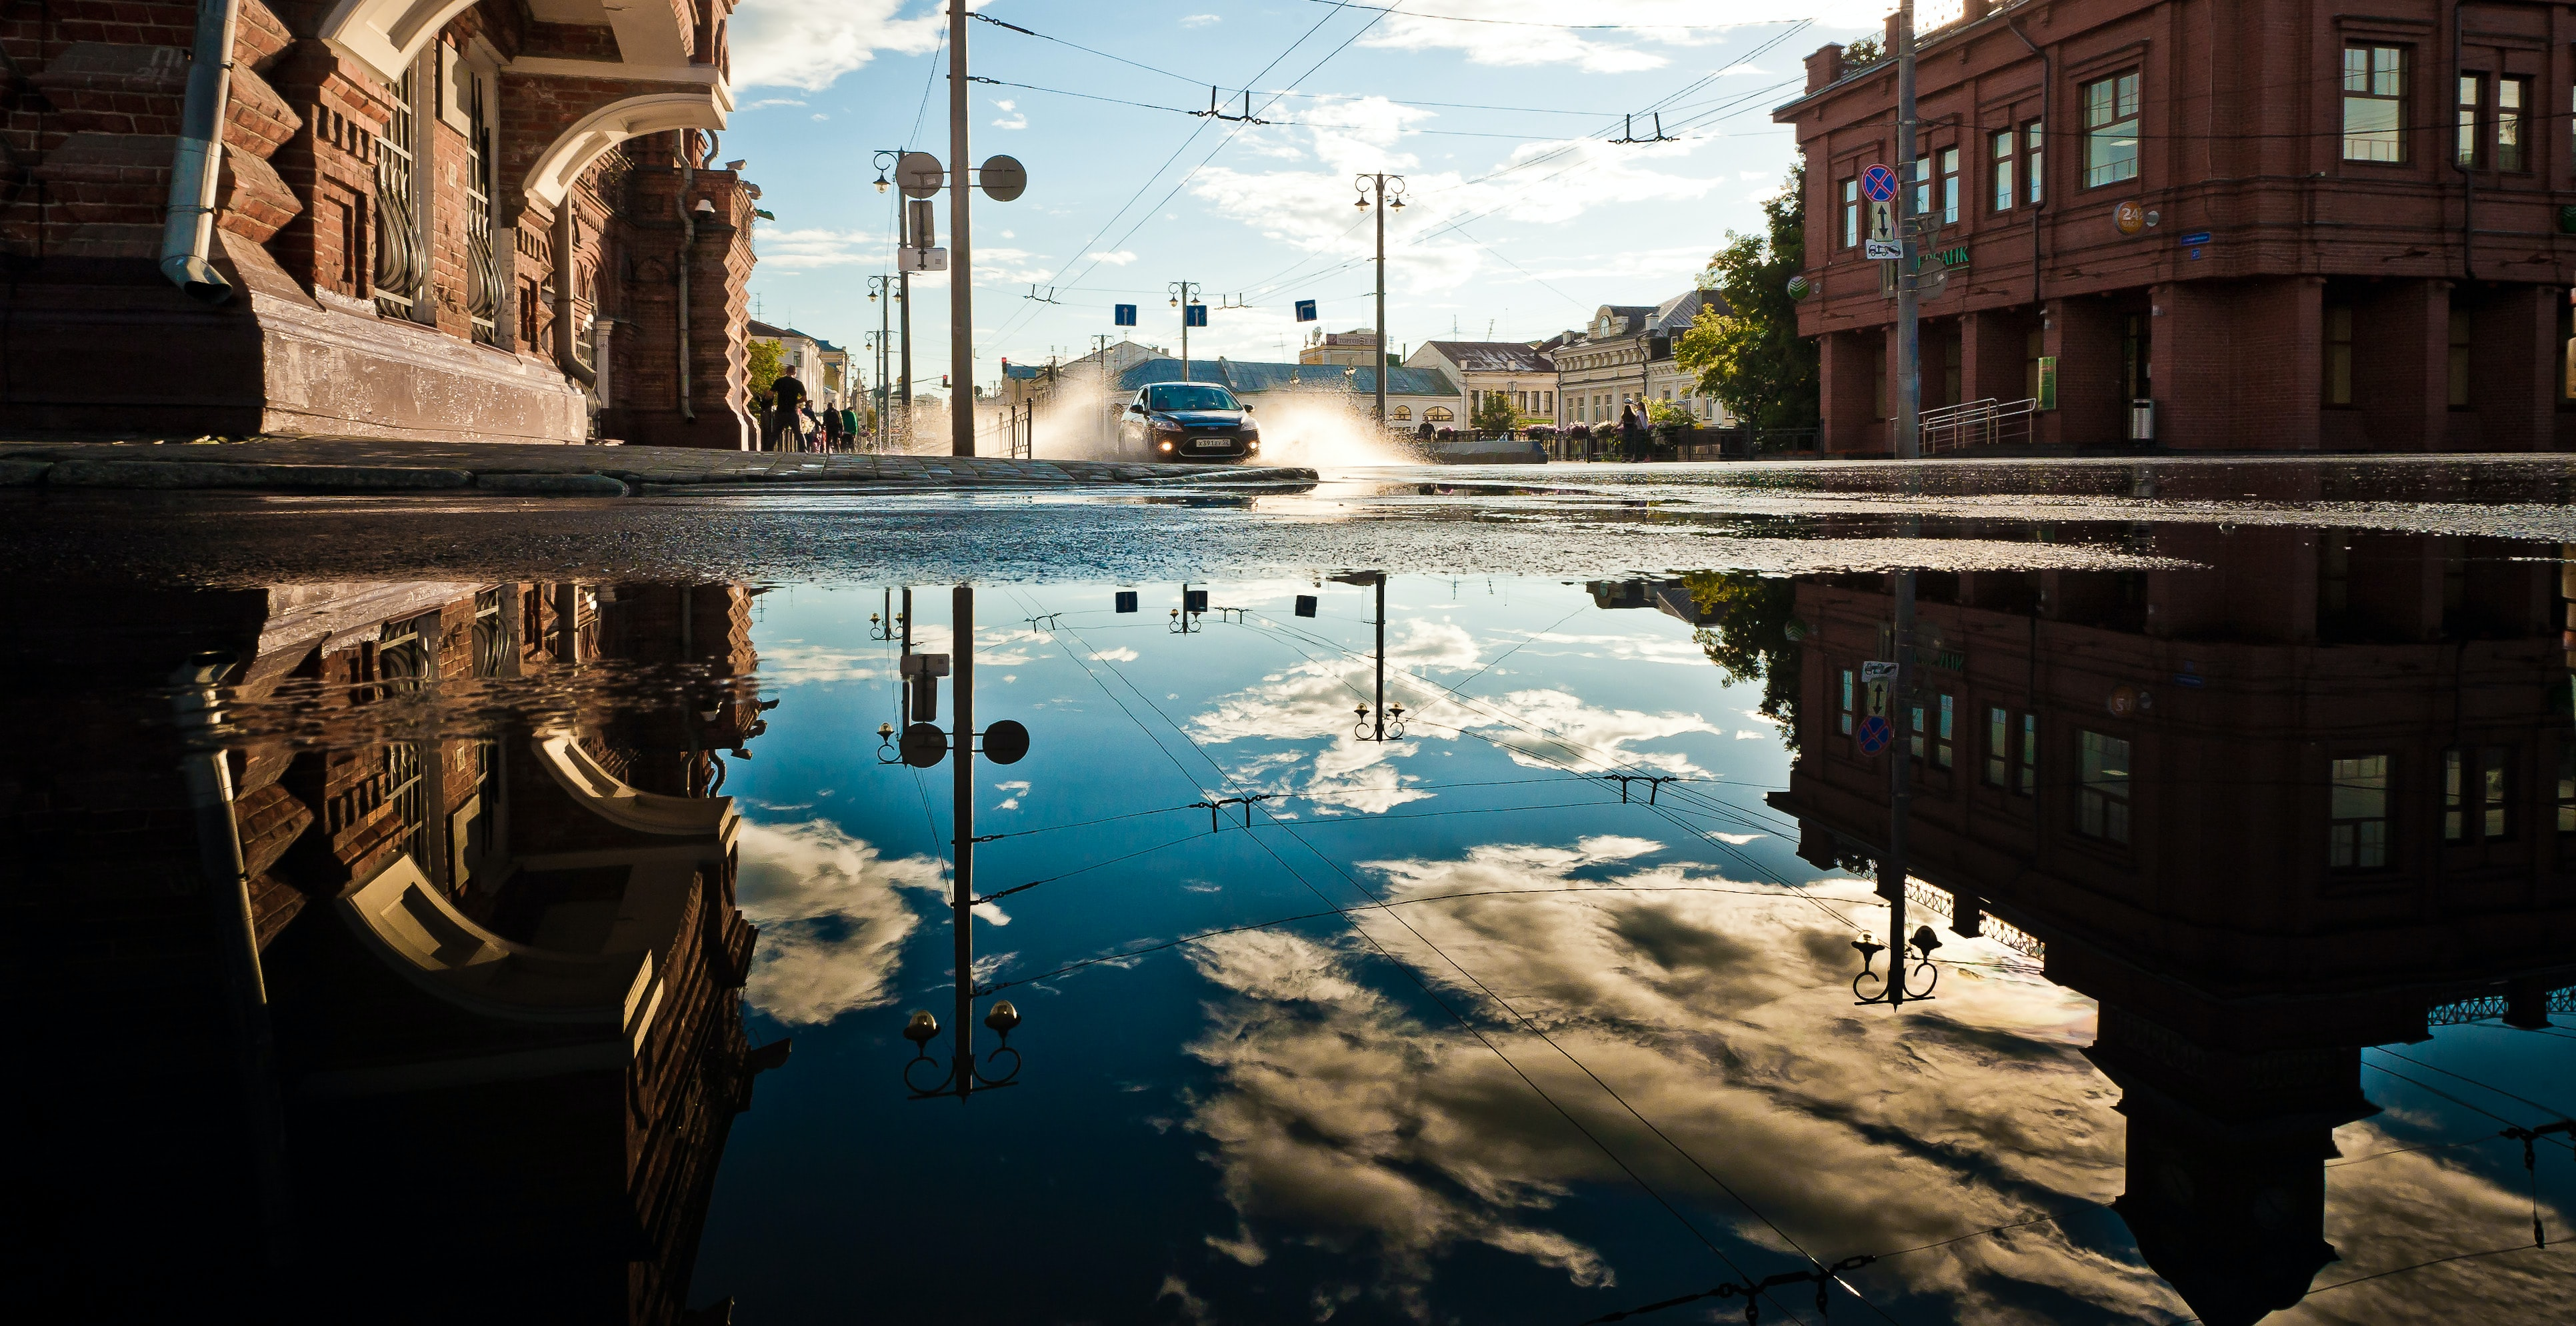 Black car driving through puddle reflecting the sky and buildings on a street in Vladimir